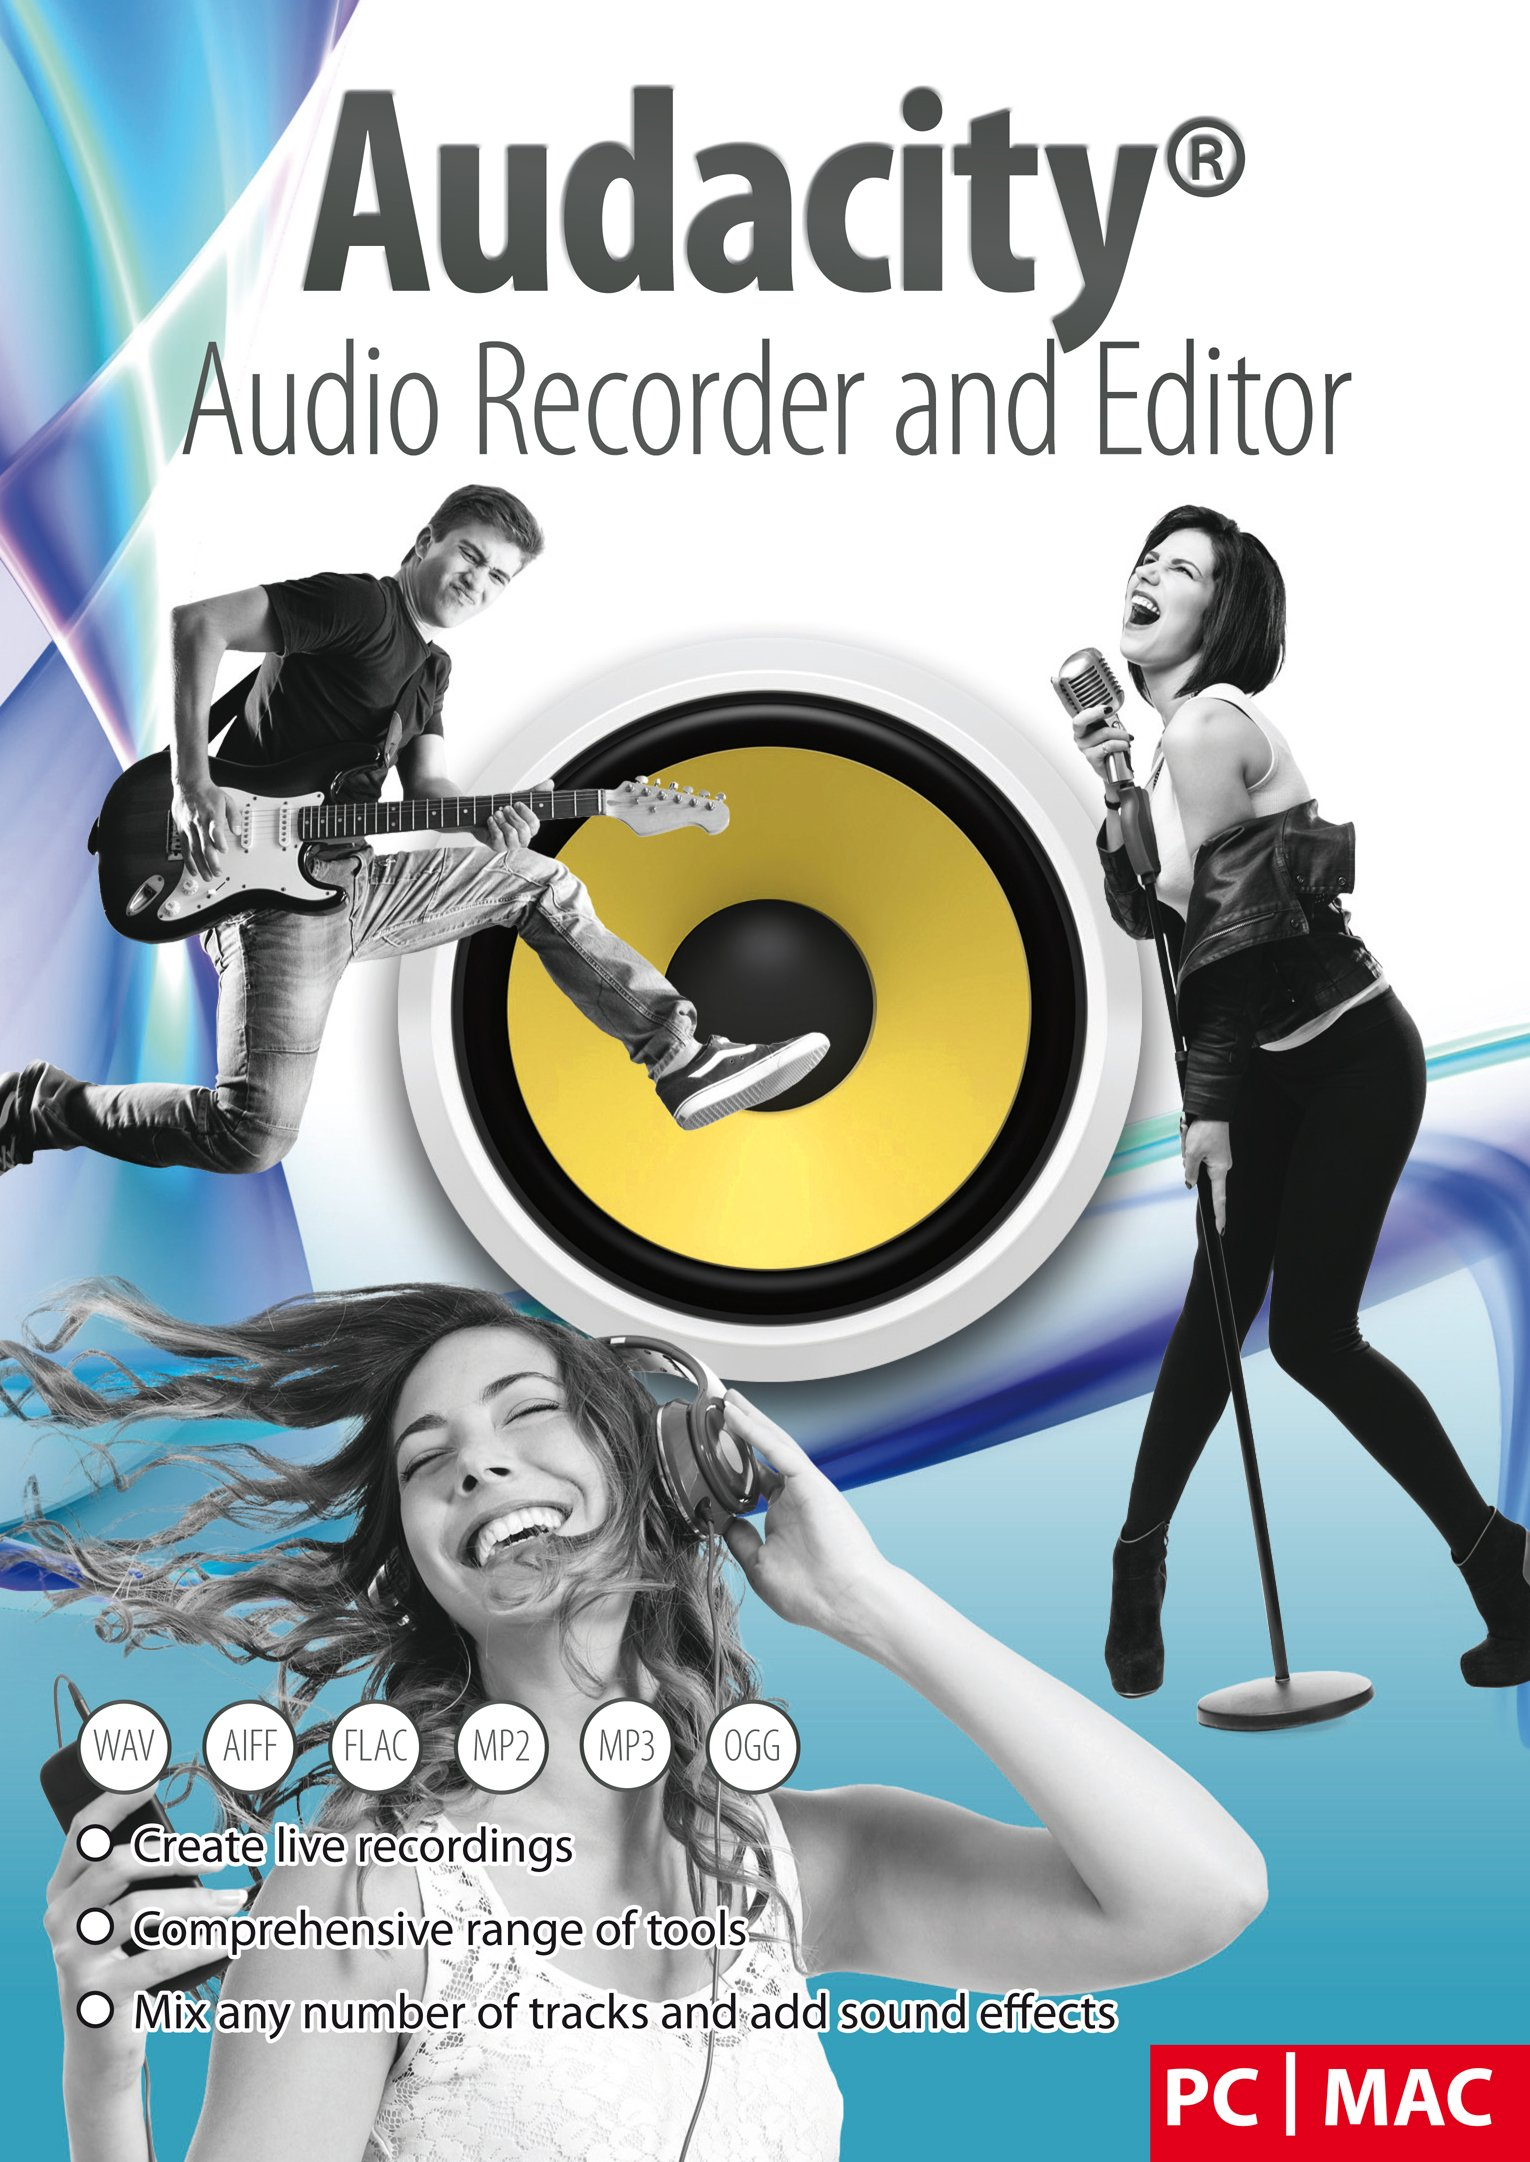 Audacity® Audio Recorder and Editor - Your professional sound studio for recording, editing and playing all common audio files: WAV, AIFF, FLAC, MP2, MP3, OGG Vorbis I For PC + Mac by Markt+Technik